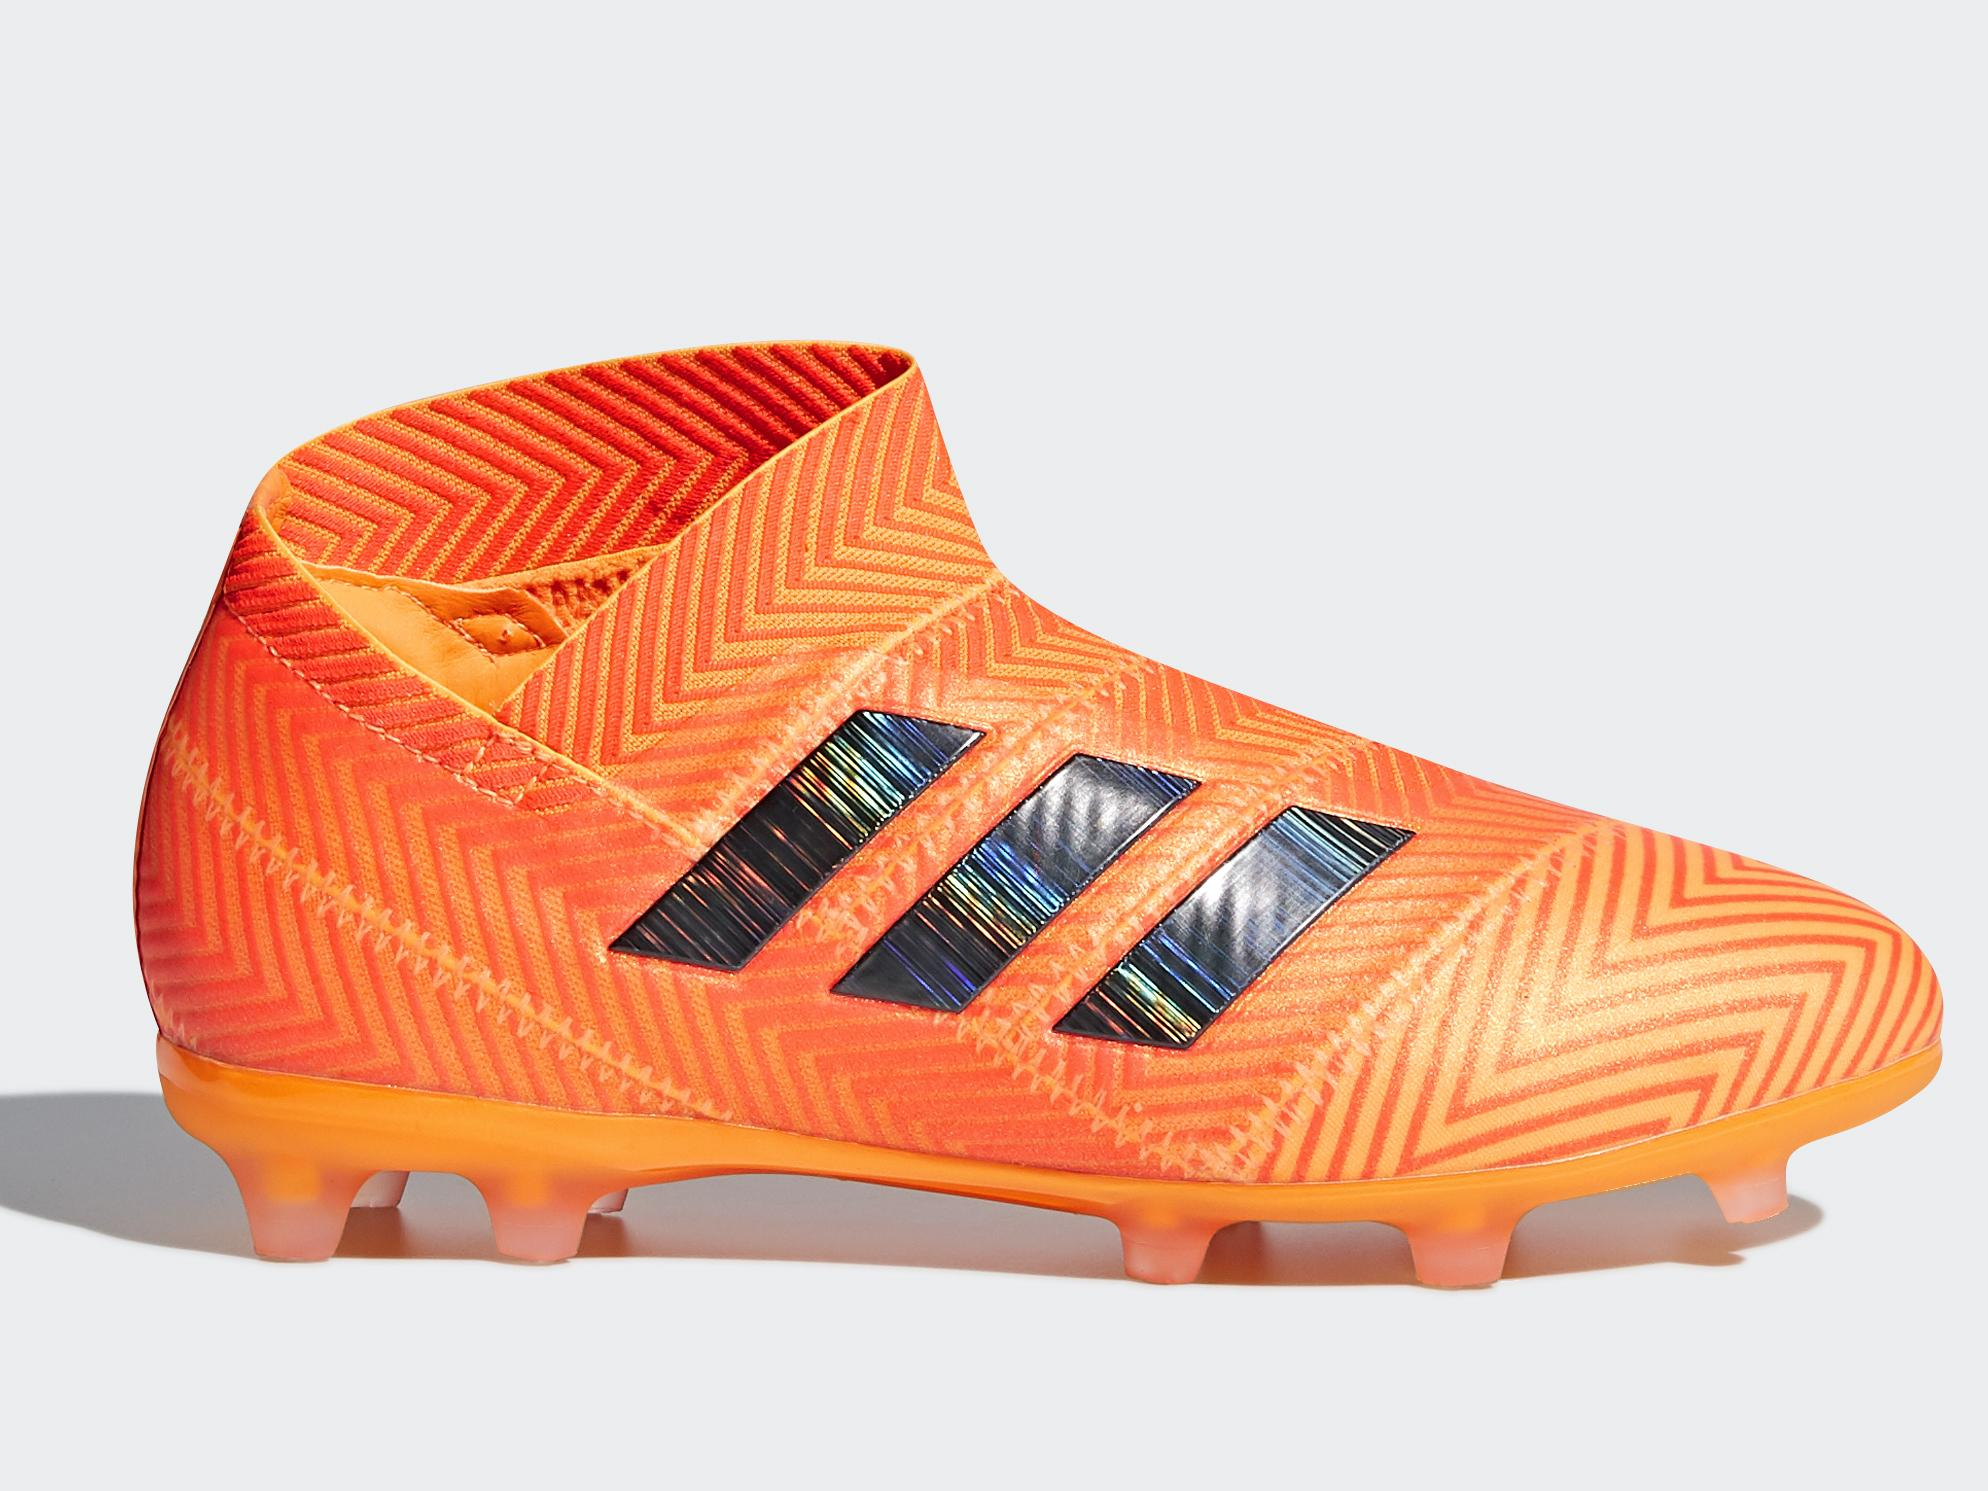 10 best kids' football boots | The Independent